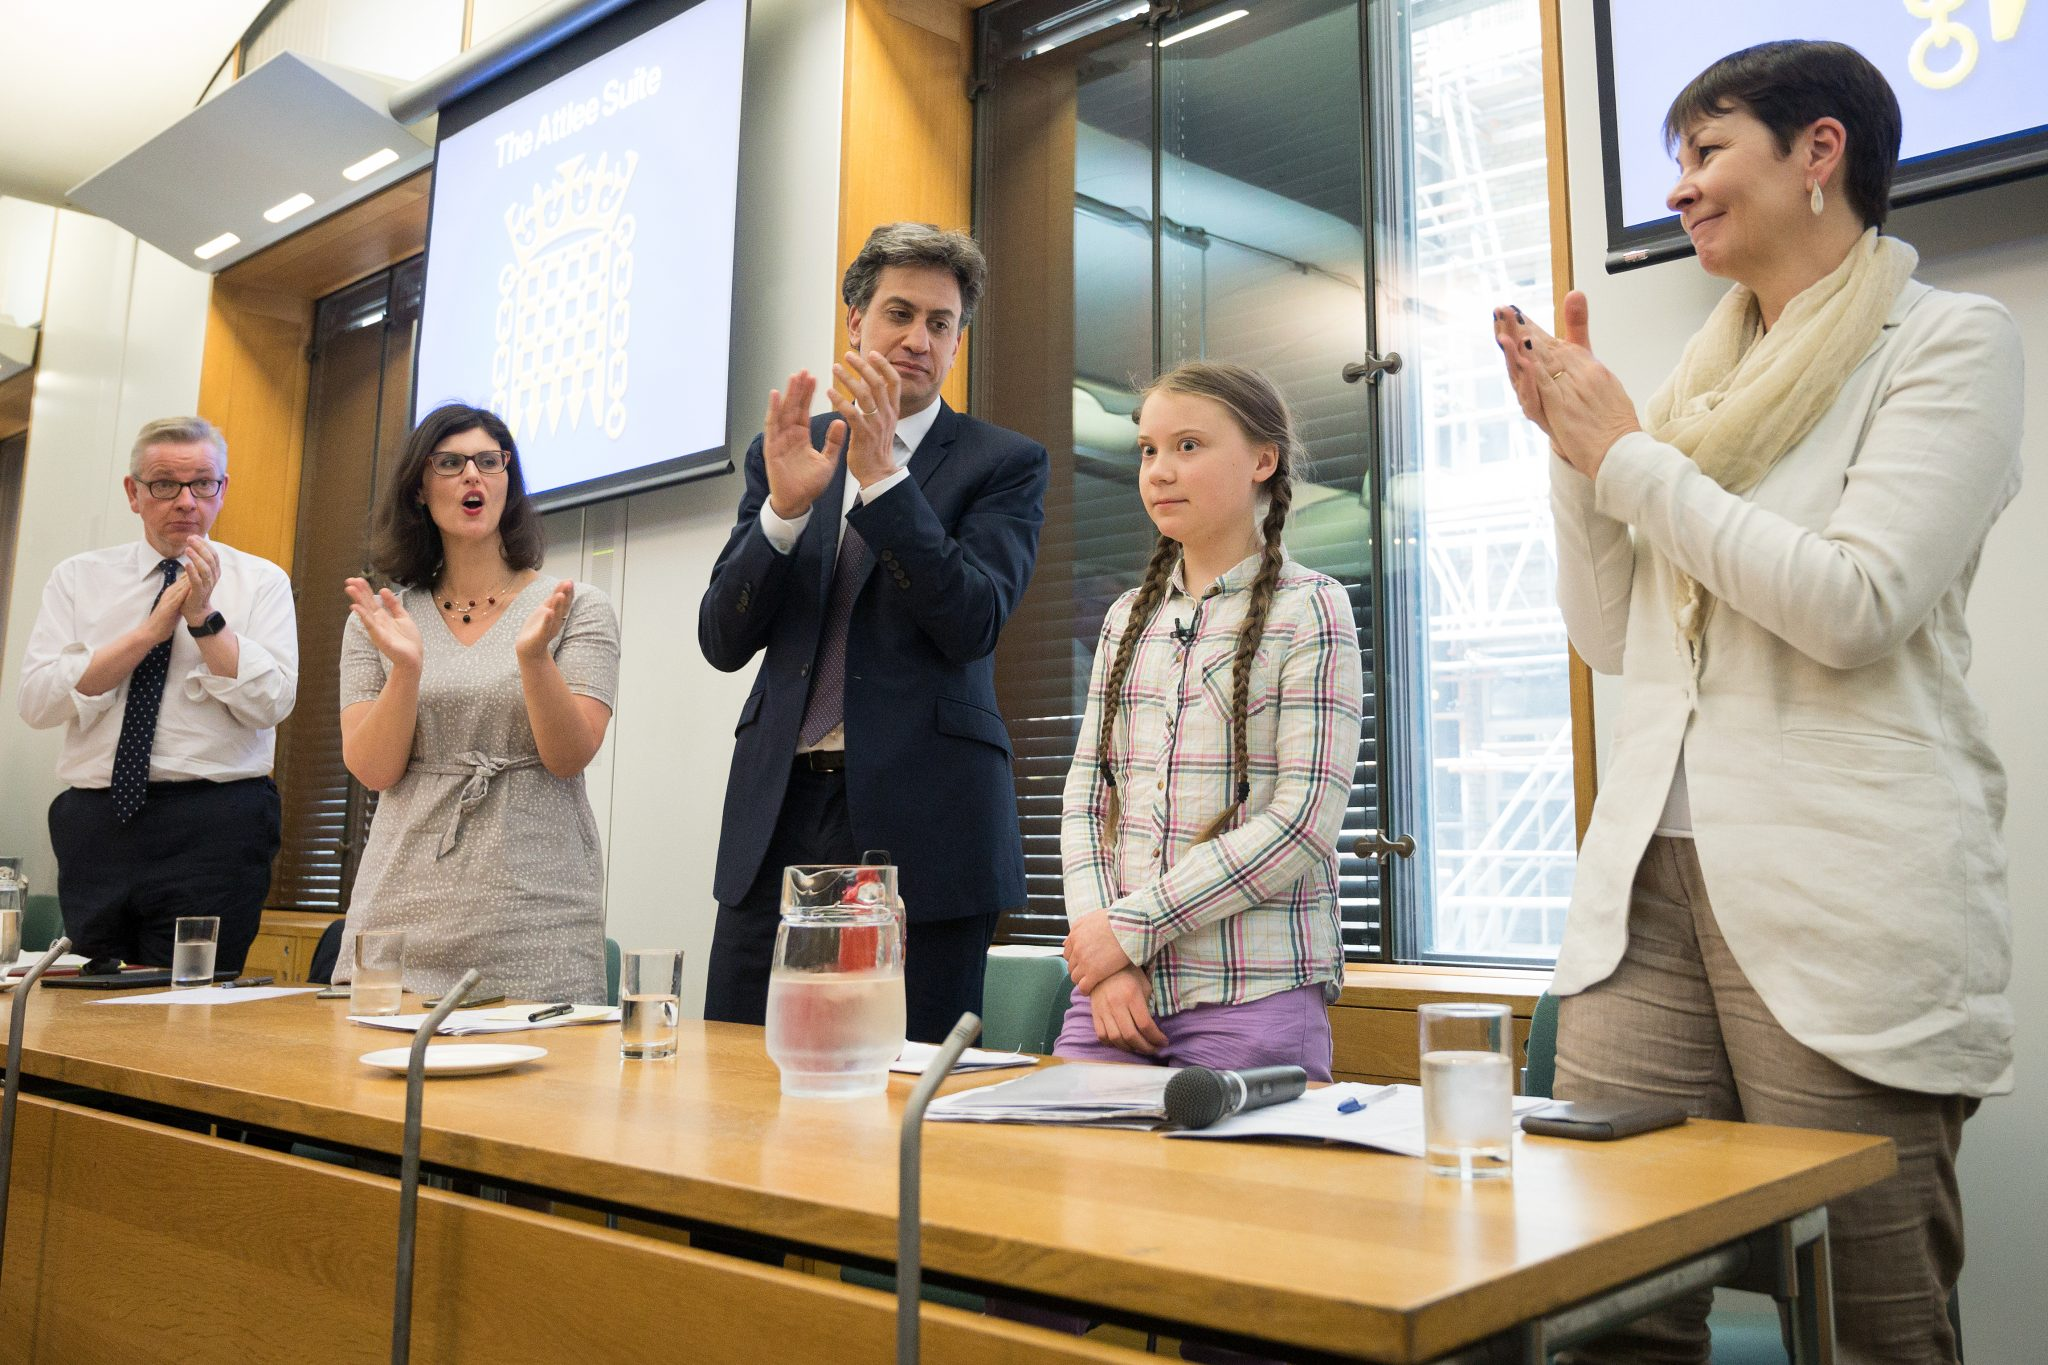 """Swedish environmental campaigner Greta Thunberg (2R) receives applause after addressing politicians, media and guests within the Houses of Parliament on April 23, 2019 in London, England. Her visit coincides with the ongoing """"Extinction Rebellion"""" protests across London, which have seen days of disruption to roads and transport systems, in a bid to highlight the dangers of climate change. (Photo by Leon Neal/Getty Images)"""